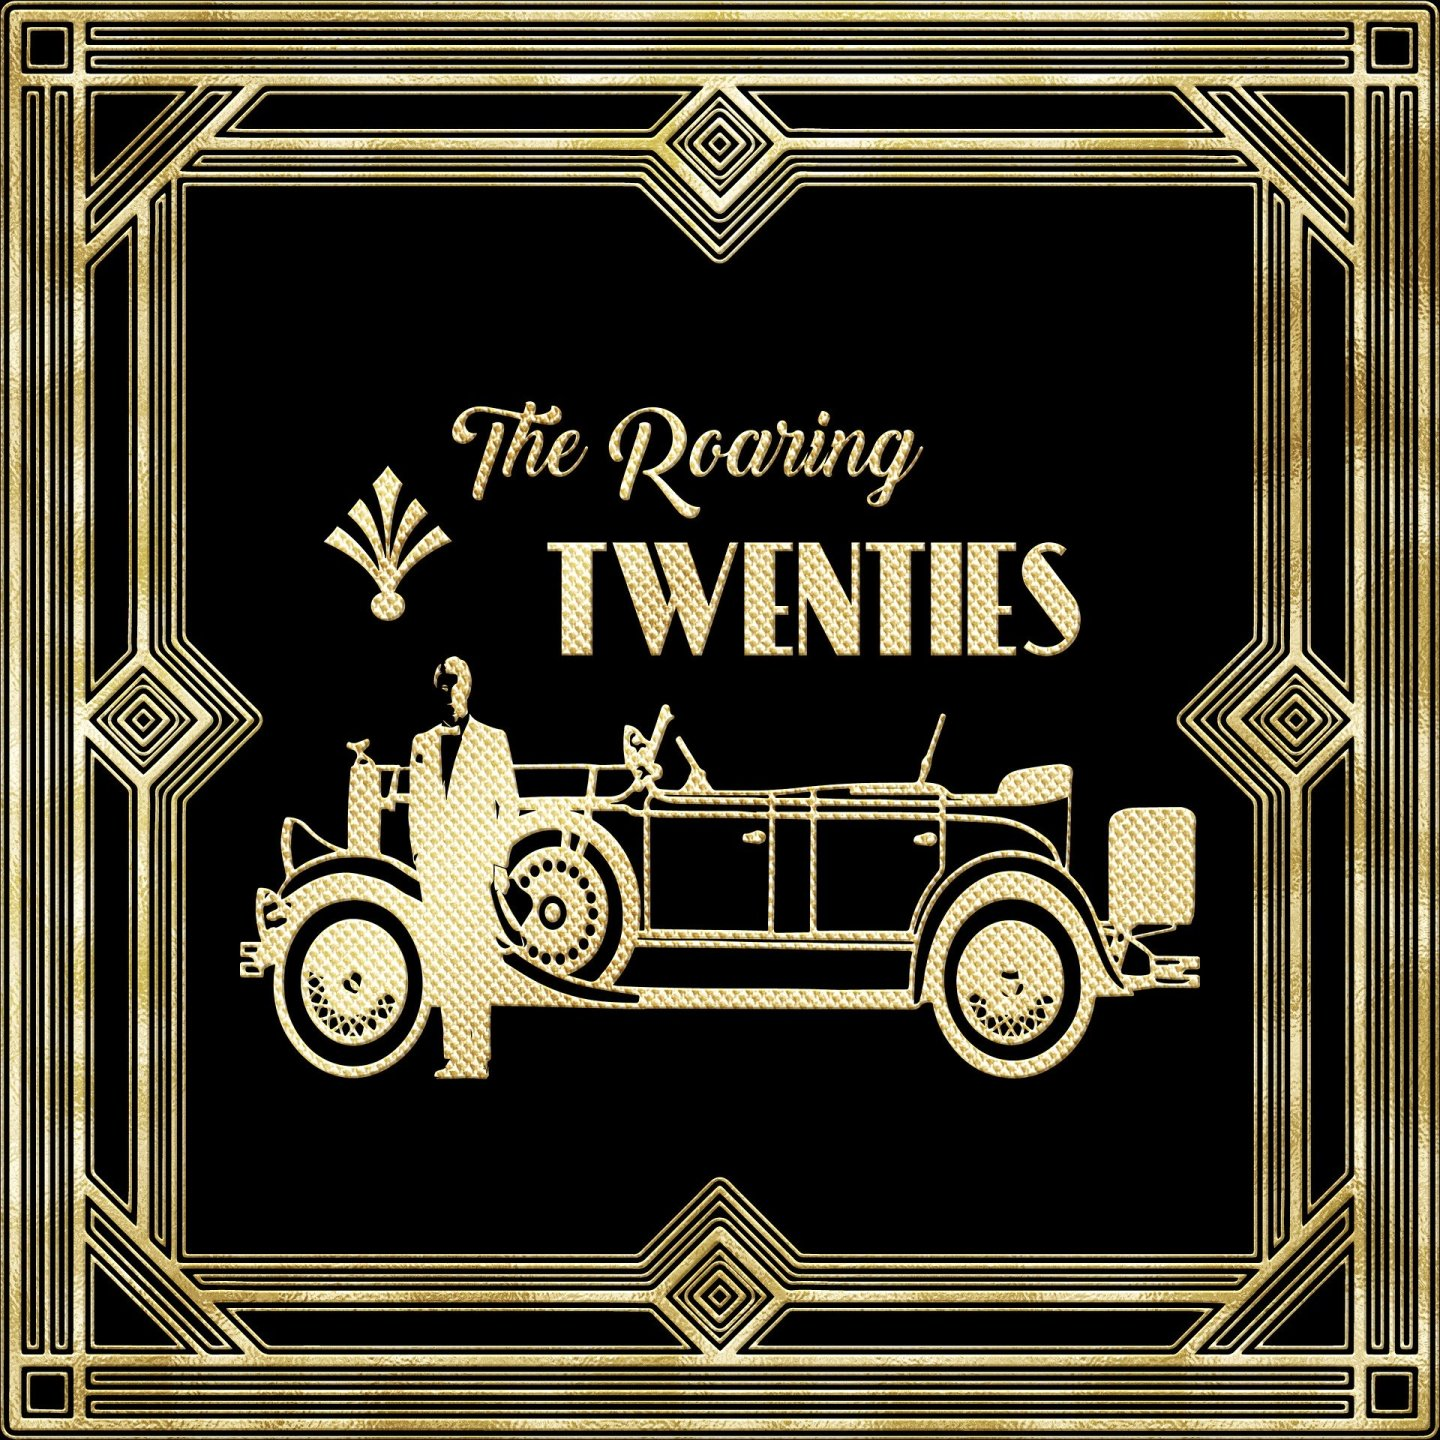 Roaring Twenties – Haiku